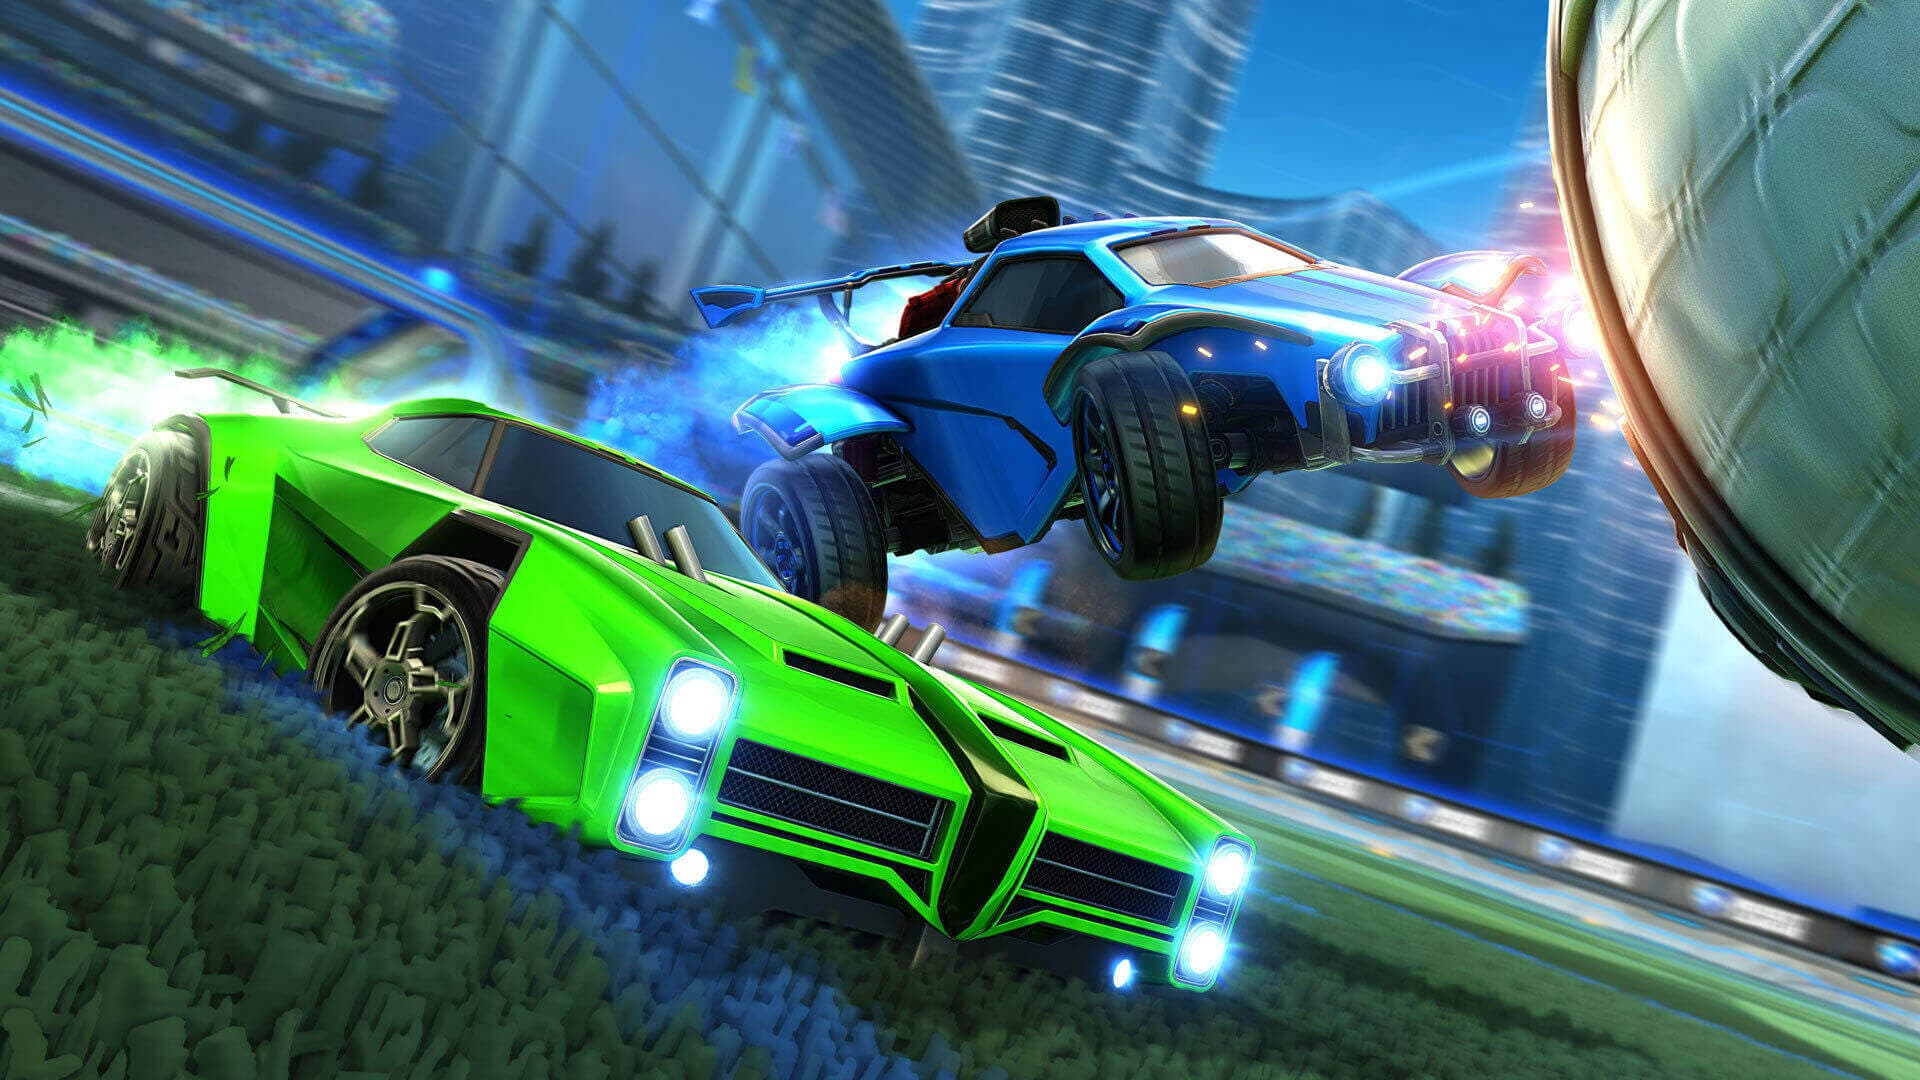 Rocket League a 120 FPS en Xbox Series X|S y no en PS5